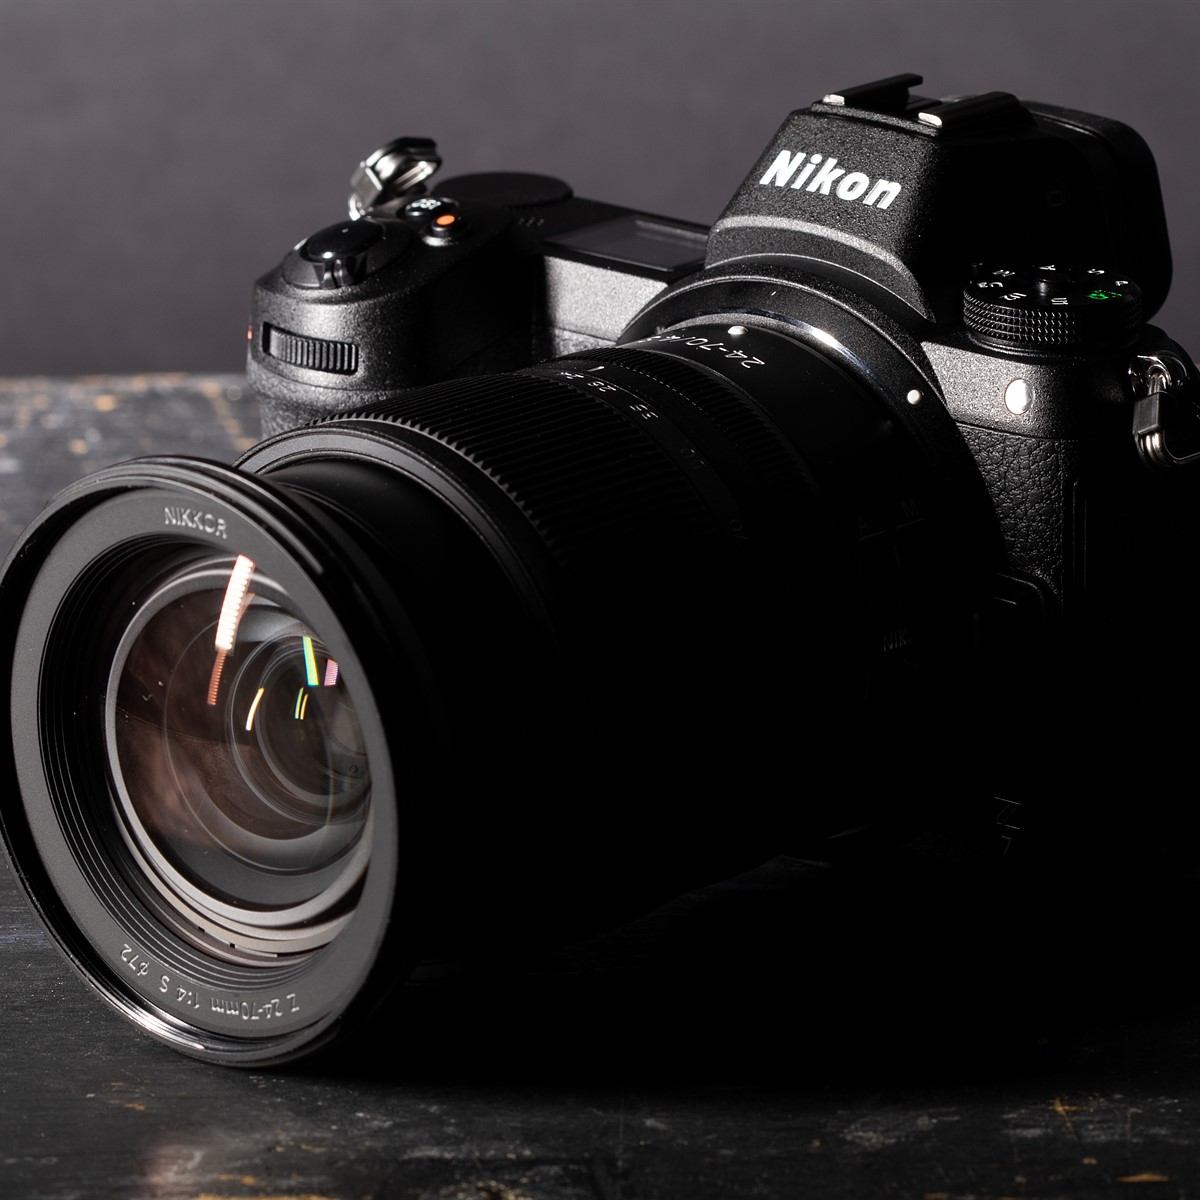 Nikon Z7 Added To Studio Comparison Scene Digital Photography Review Imaging Products Parts And Controls D800 D800e